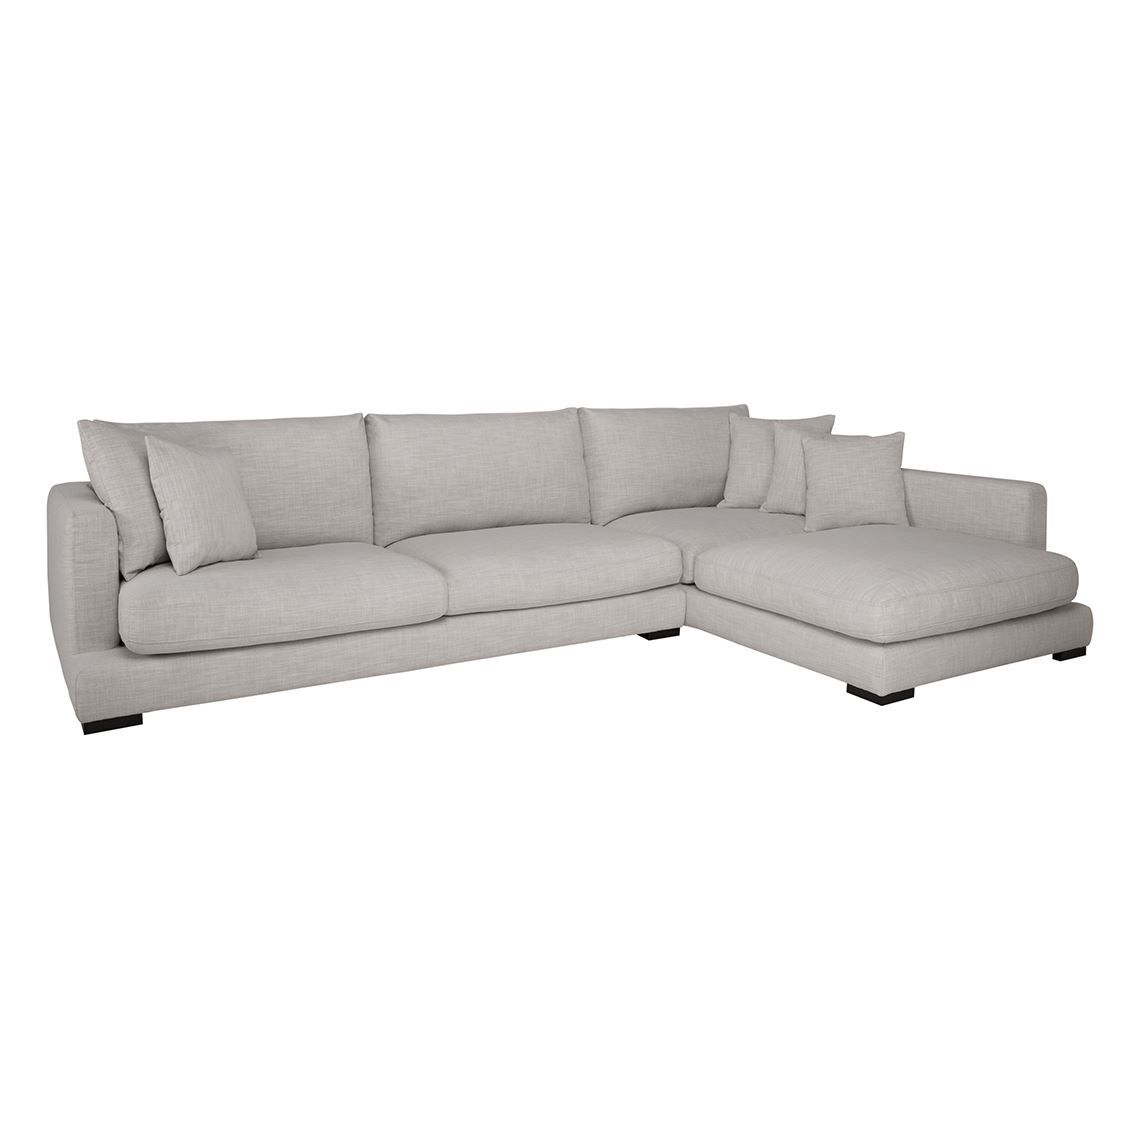 Hamilton 3 Seat Fabric Modular Sofa With Right Terminal Steel Grey Modular Sofa Furniture Comfy Couch